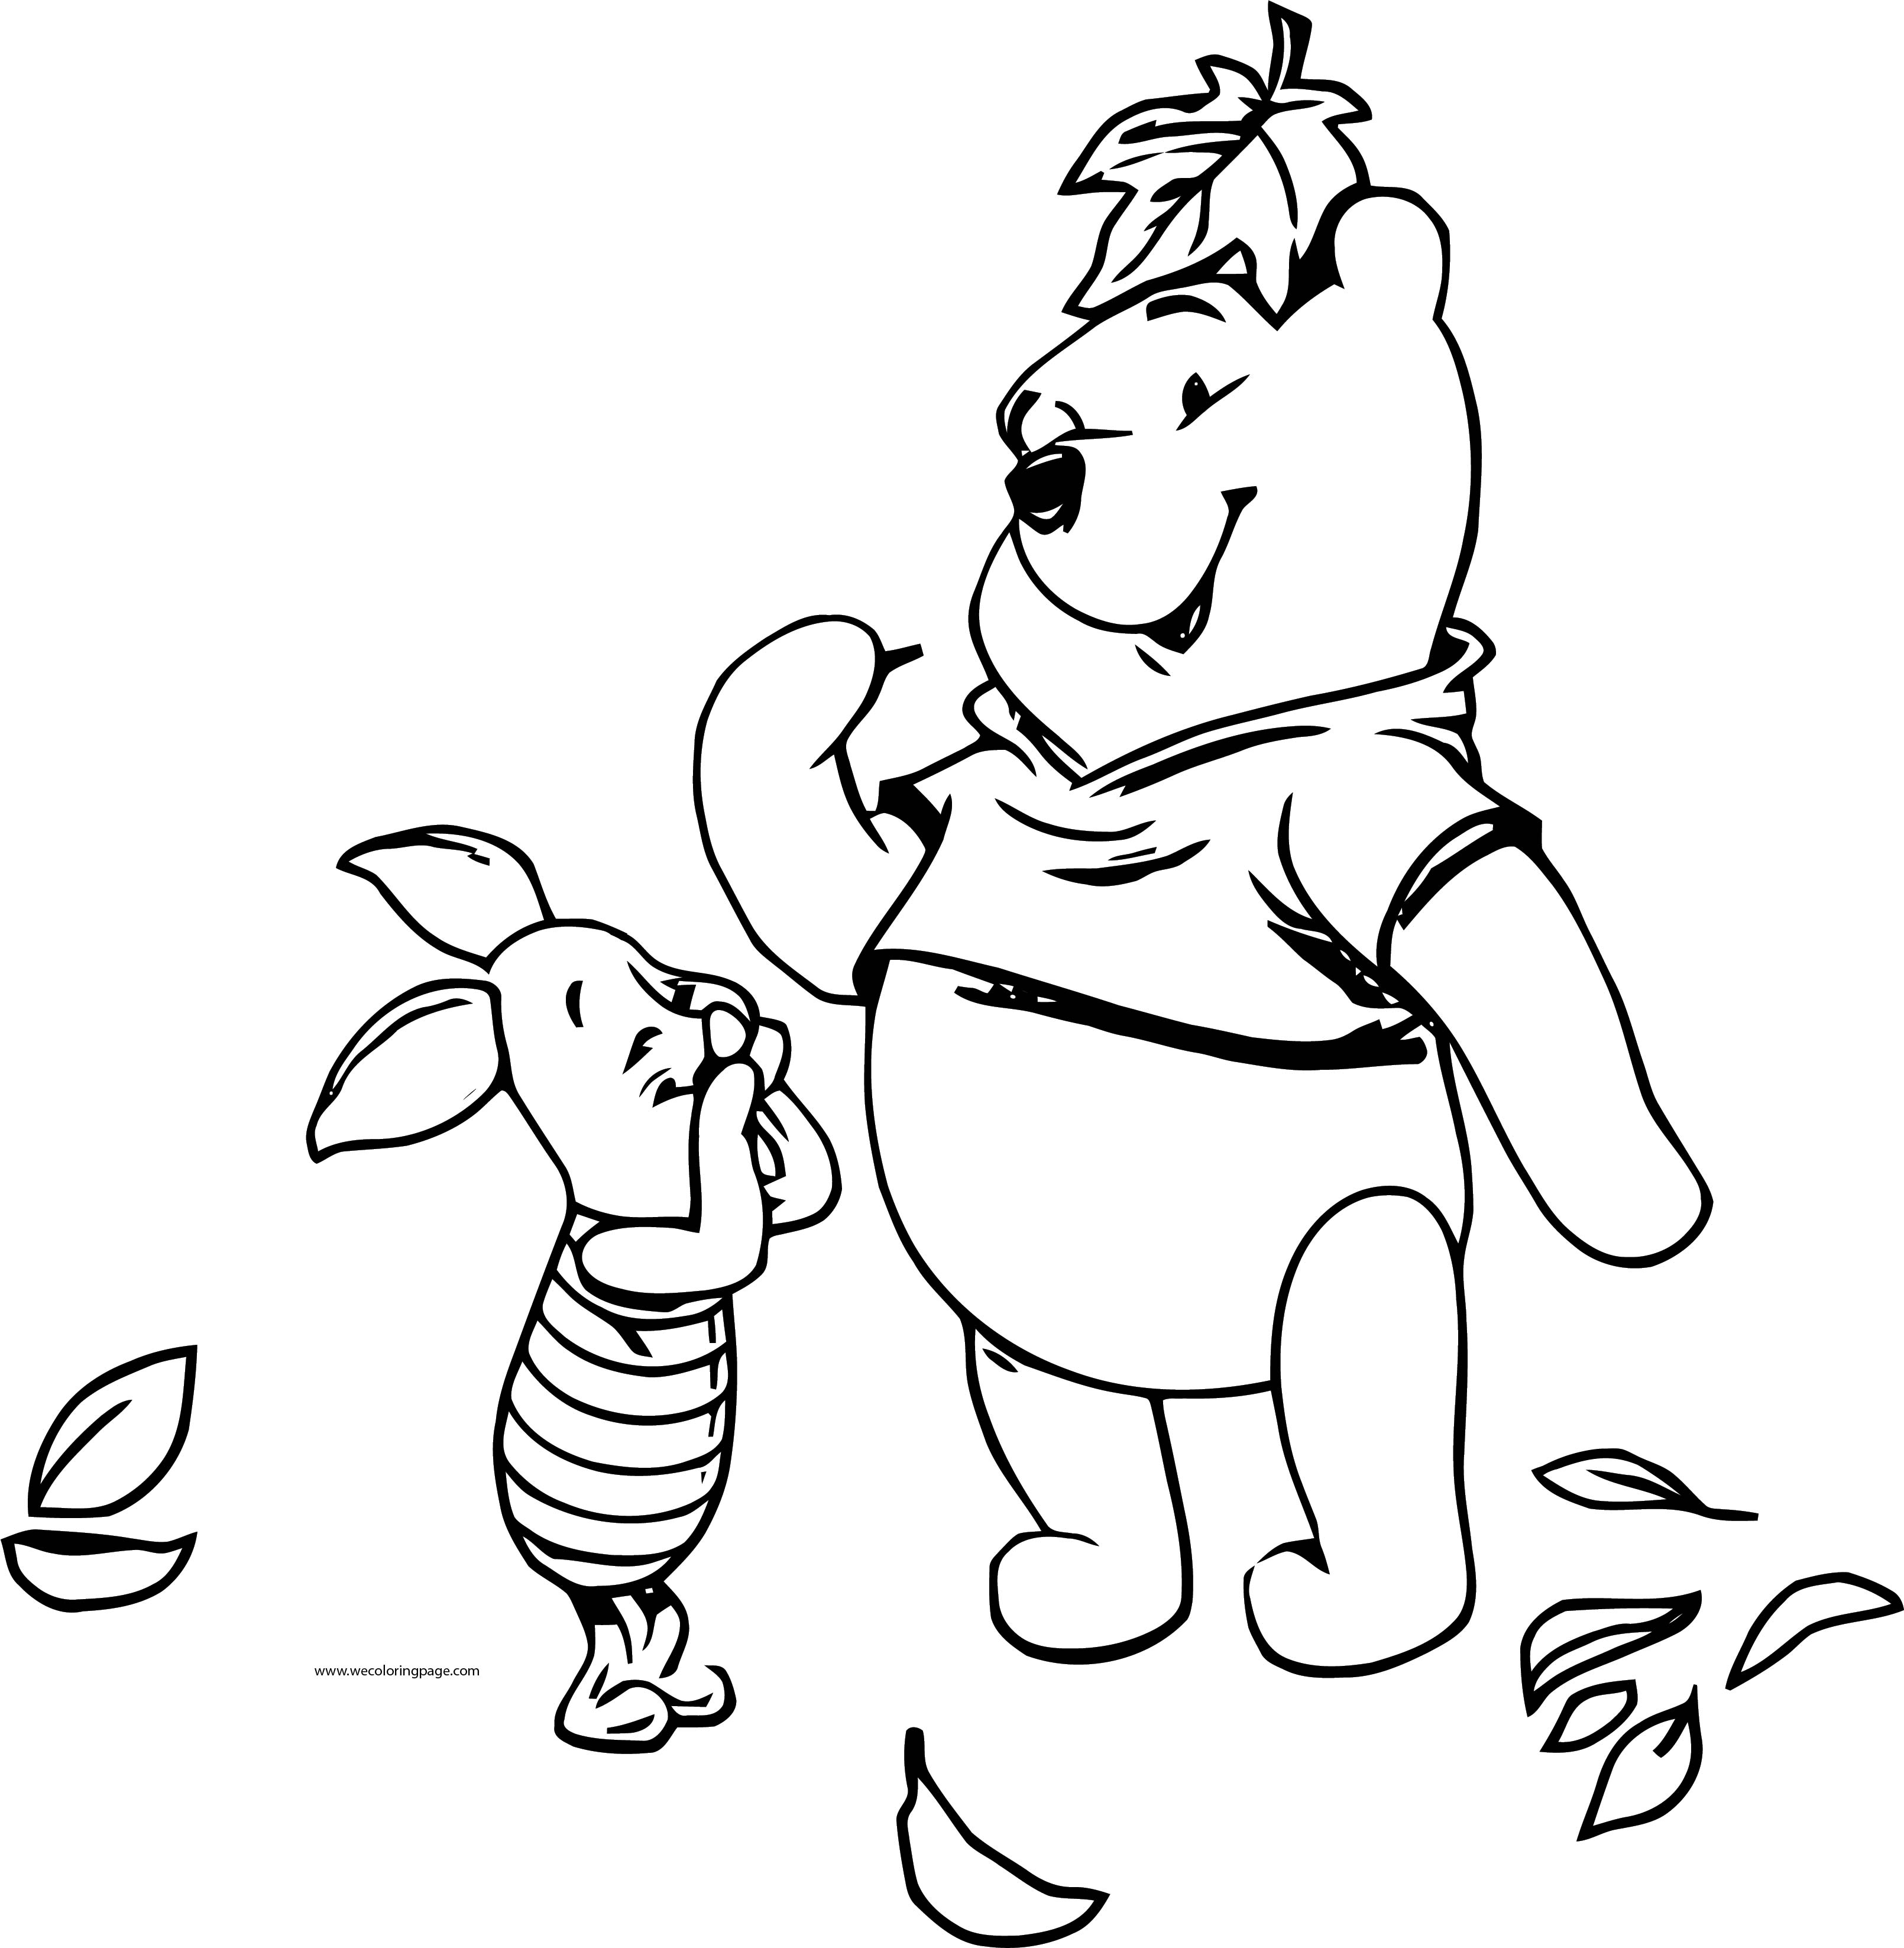 Fall Winnie The Pooh Piglet Coloring Page